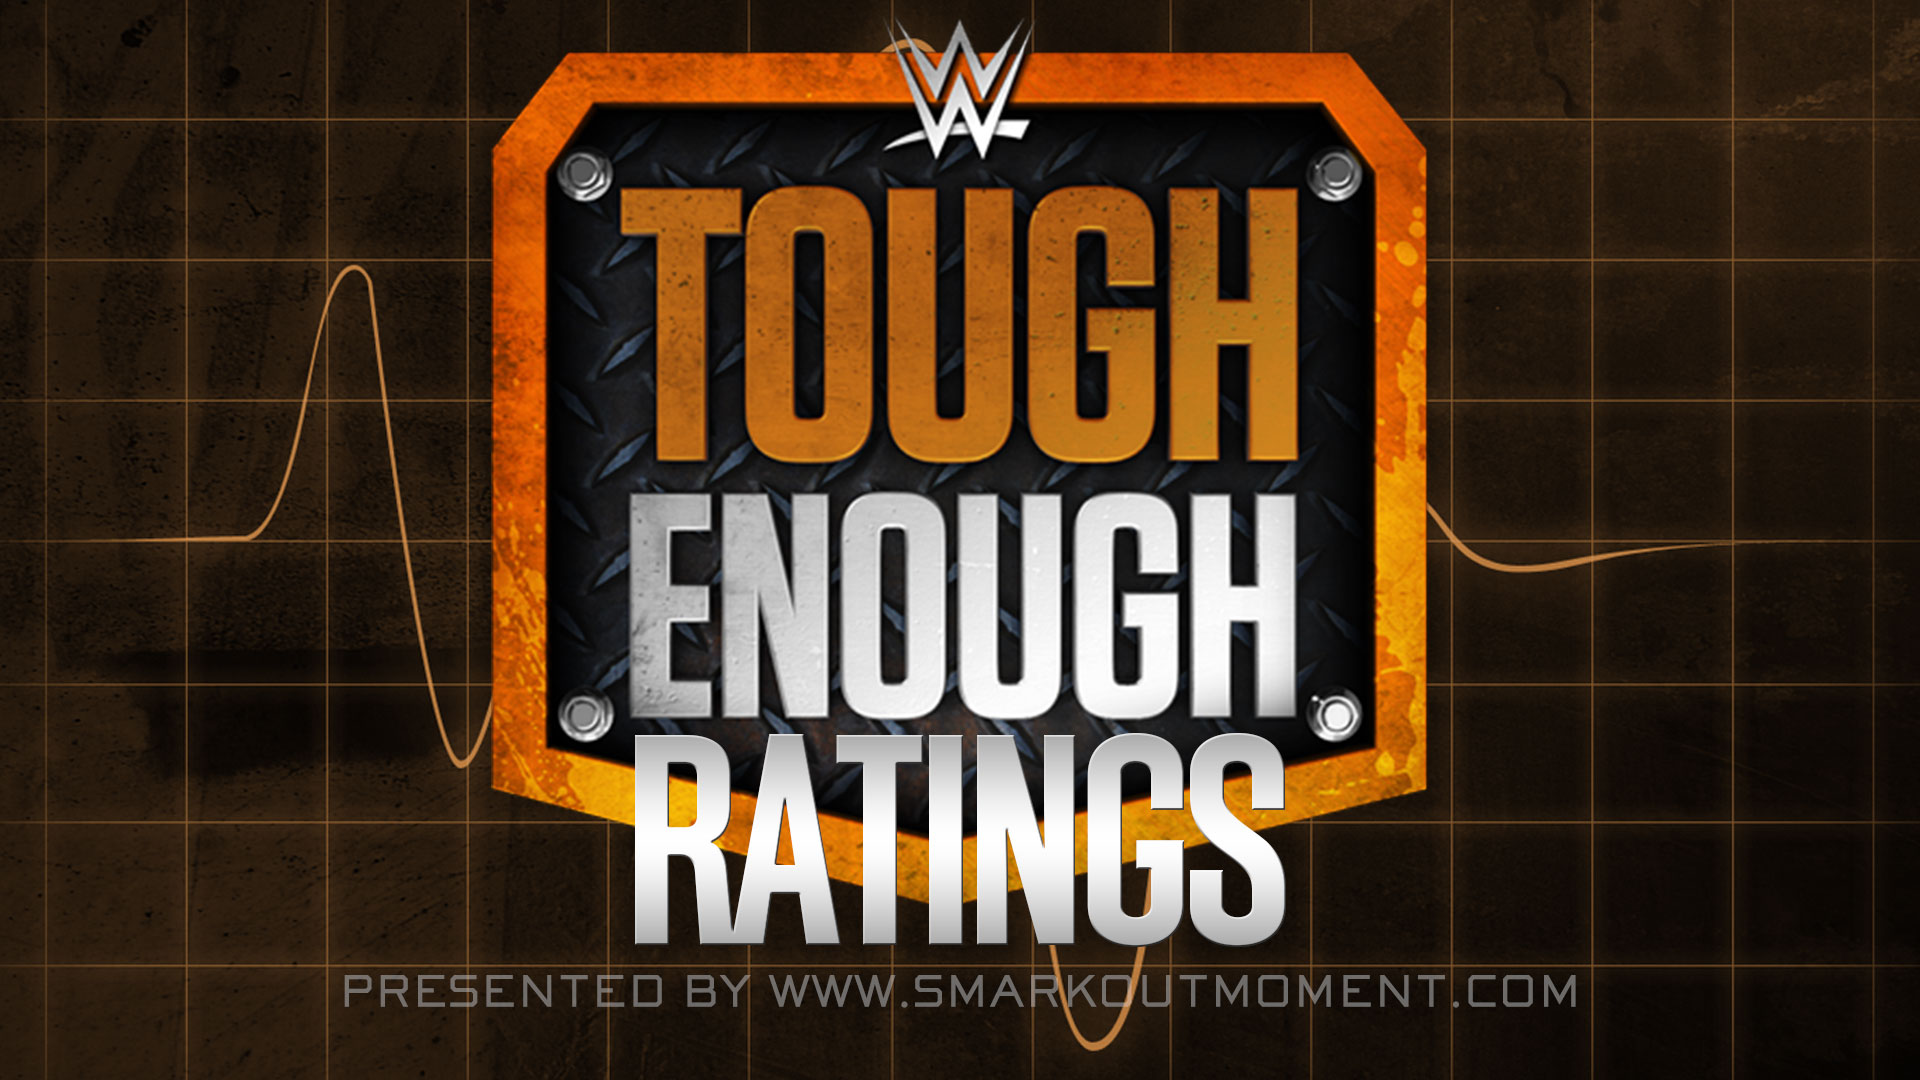 WWE Tough Enough TV ratings